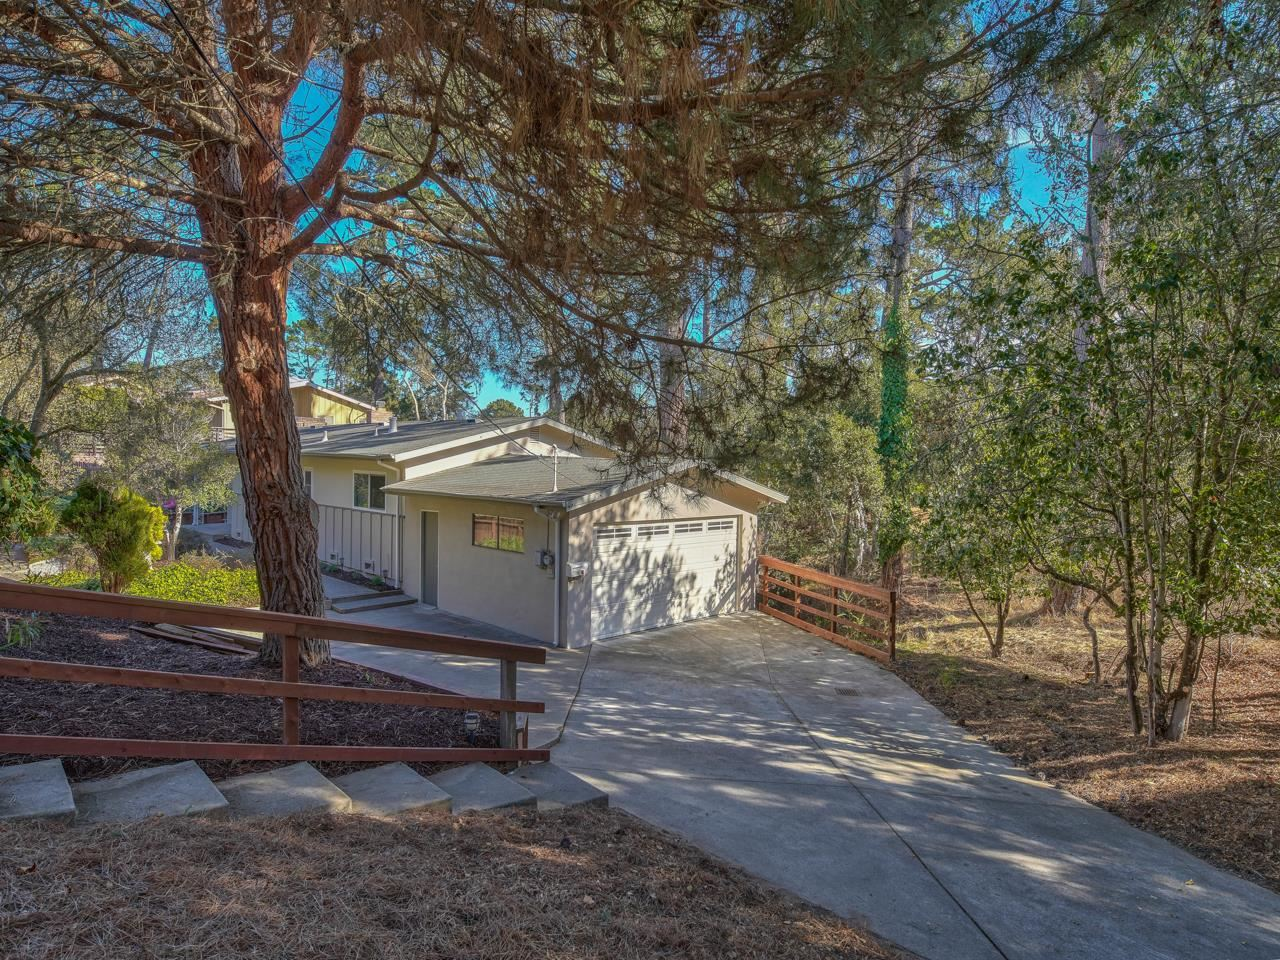 Photo for 97 Via Arcerolo DR, MONTEREY, CA 93940 (MLS # ML81822756)